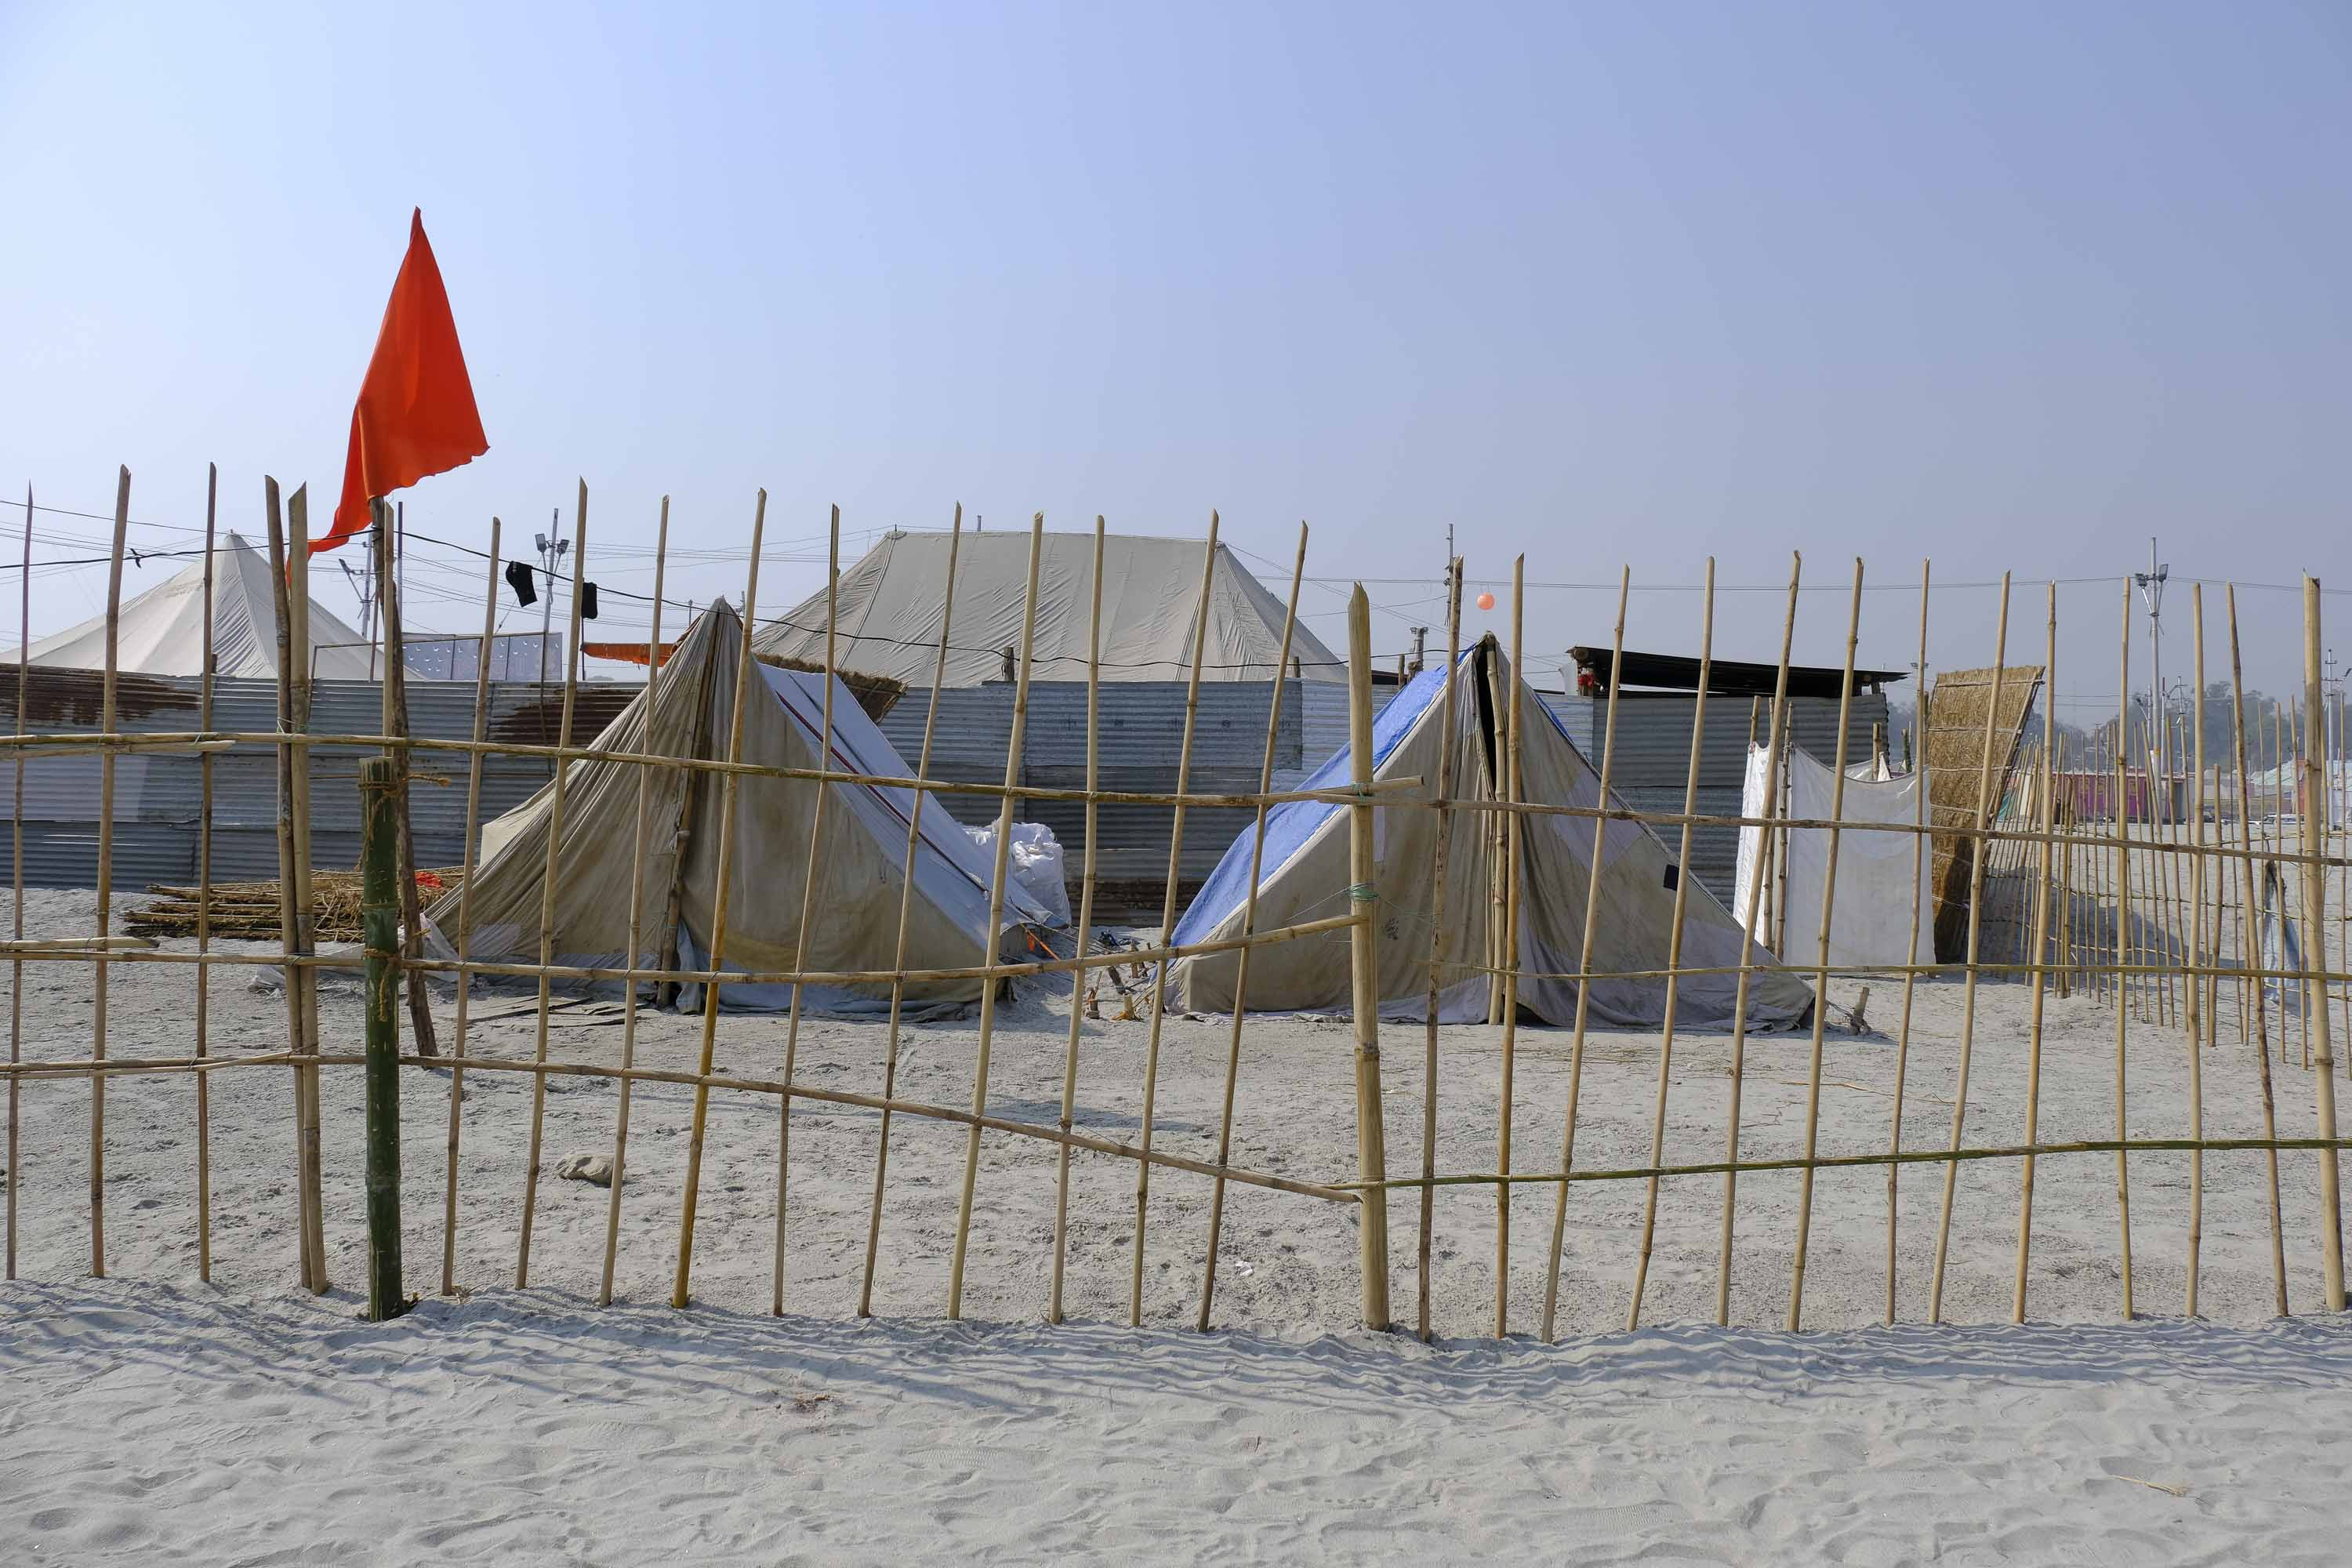 camp tent sleeping place pilgrims Kumbh mela 2019 India Allahabad Prayagraj Ardh hindu religious Festival event rivers photographer jose jeuland photography